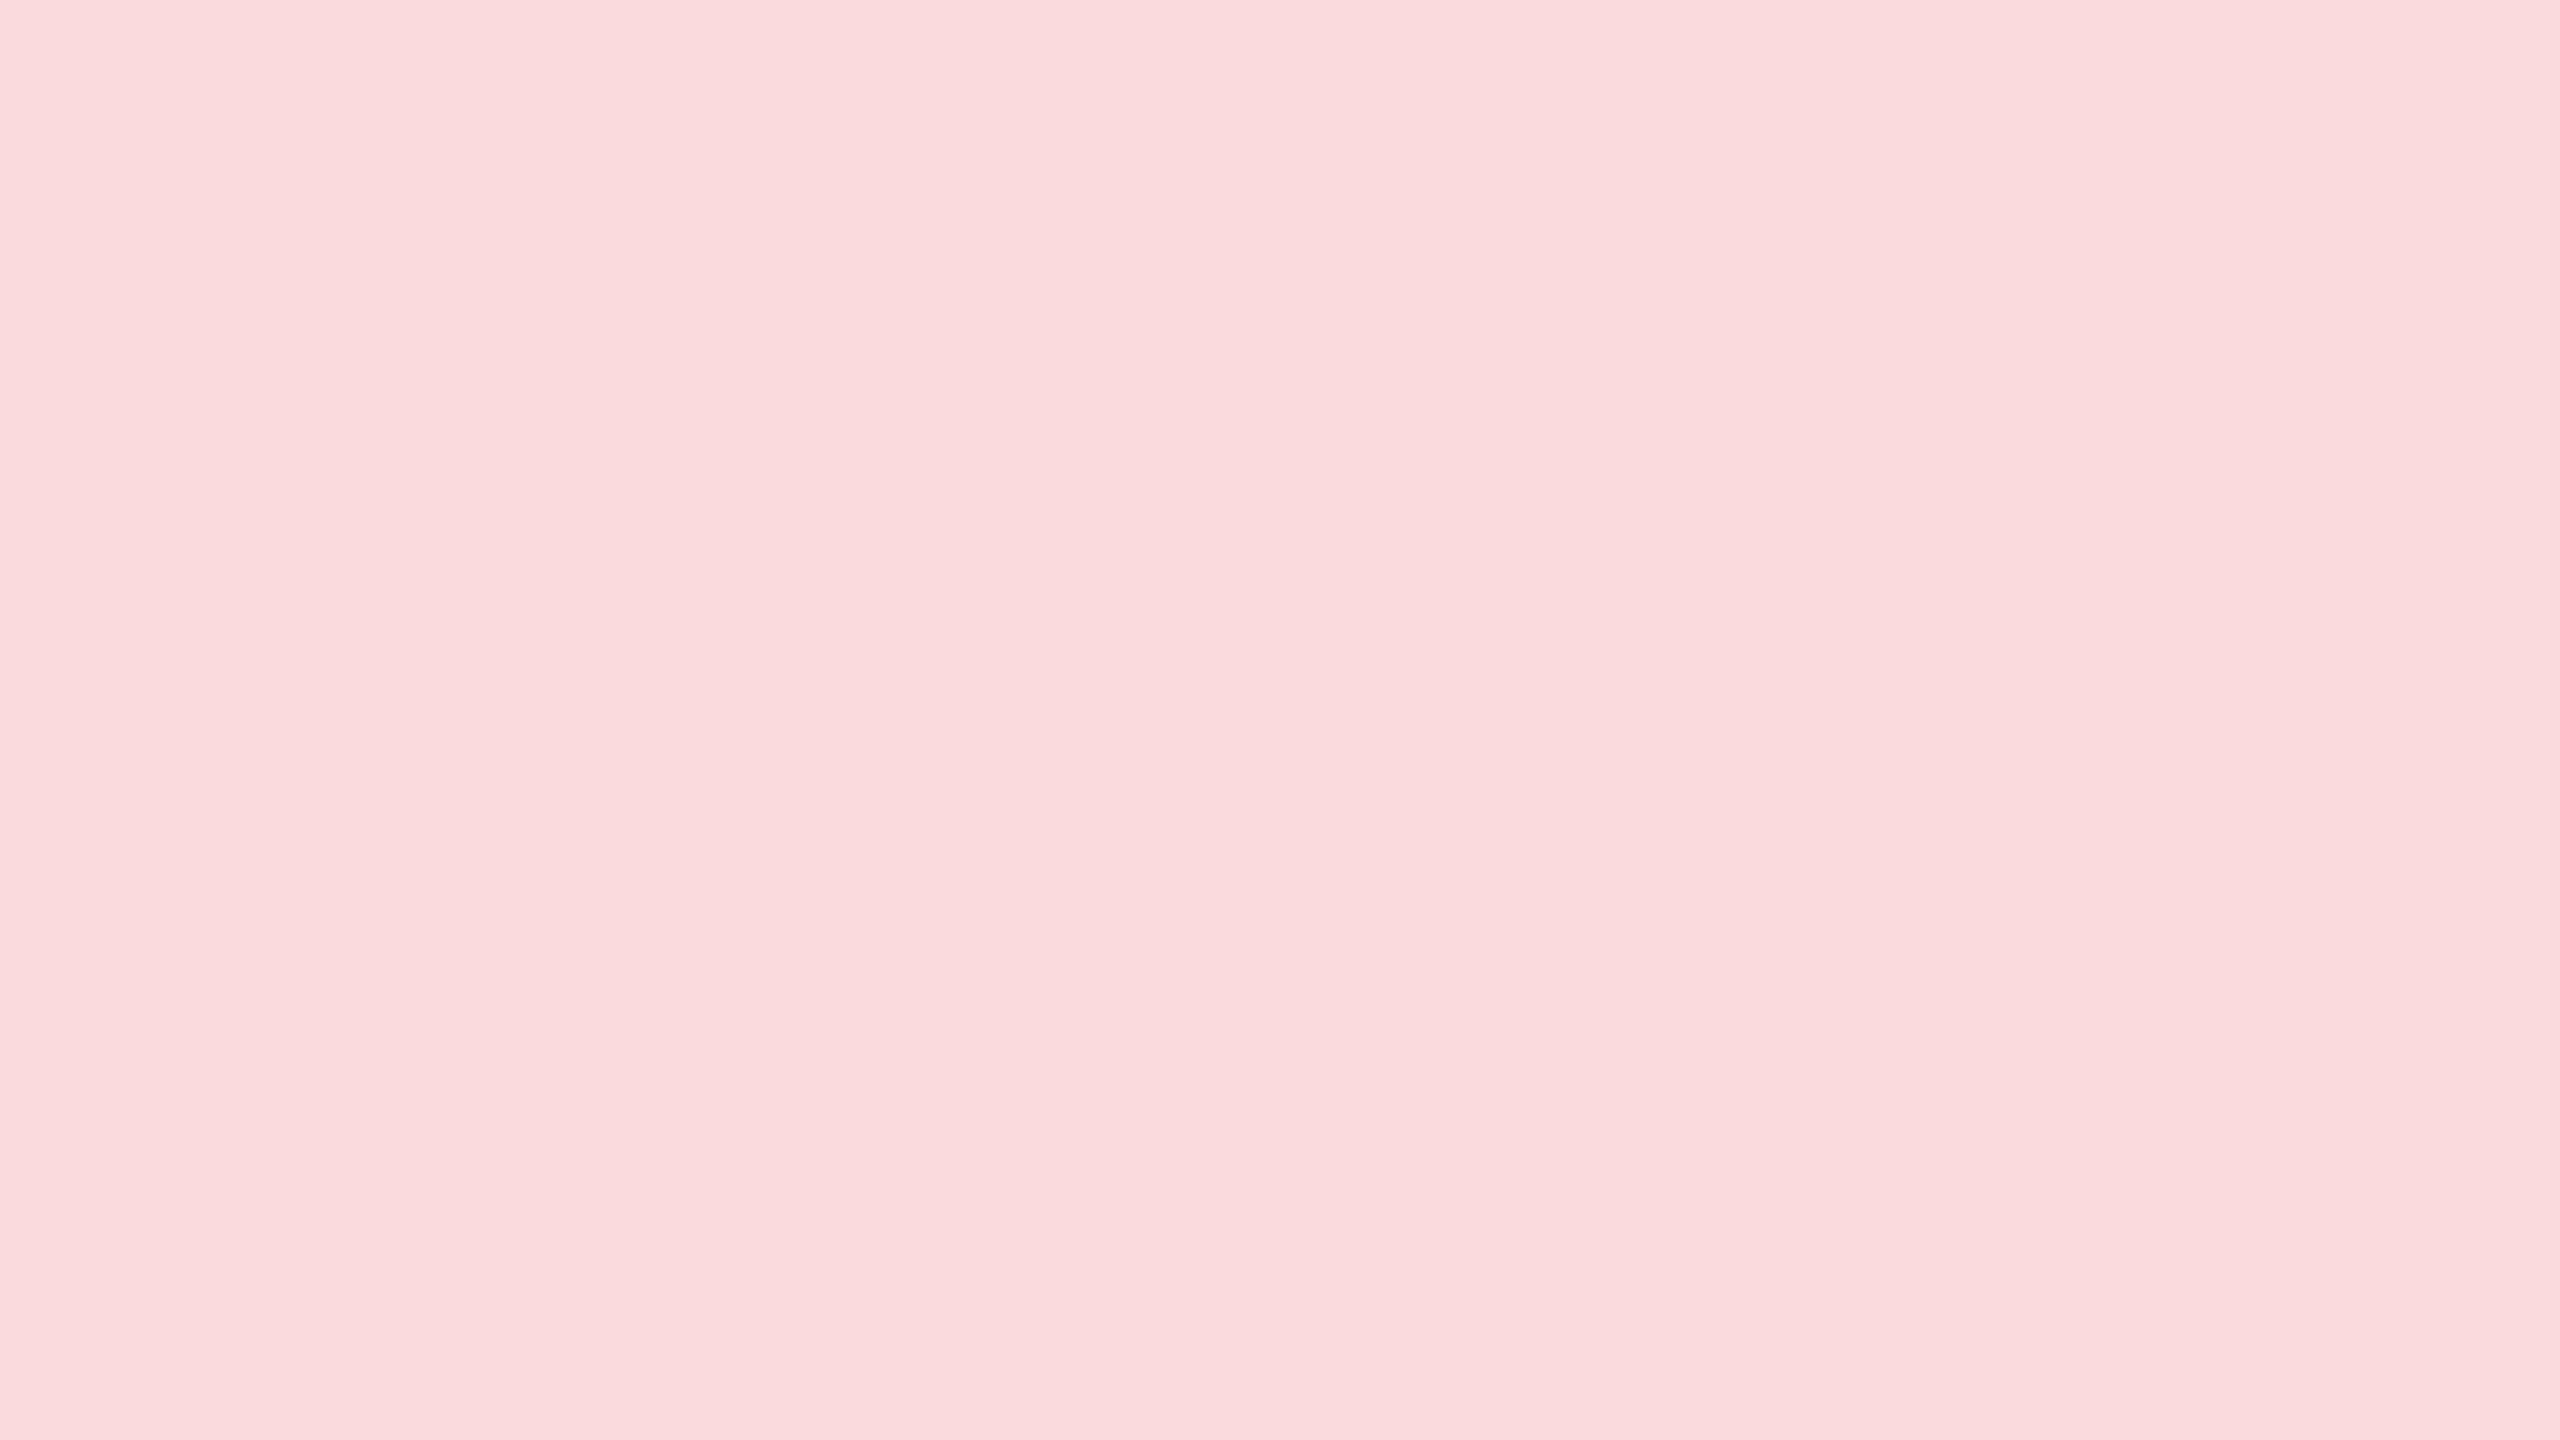 Cool Wallpaper Marble Light Pink - 641453-amazing-pale-backgrounds-2560x1440-samsung  Pictures_129112.jpg